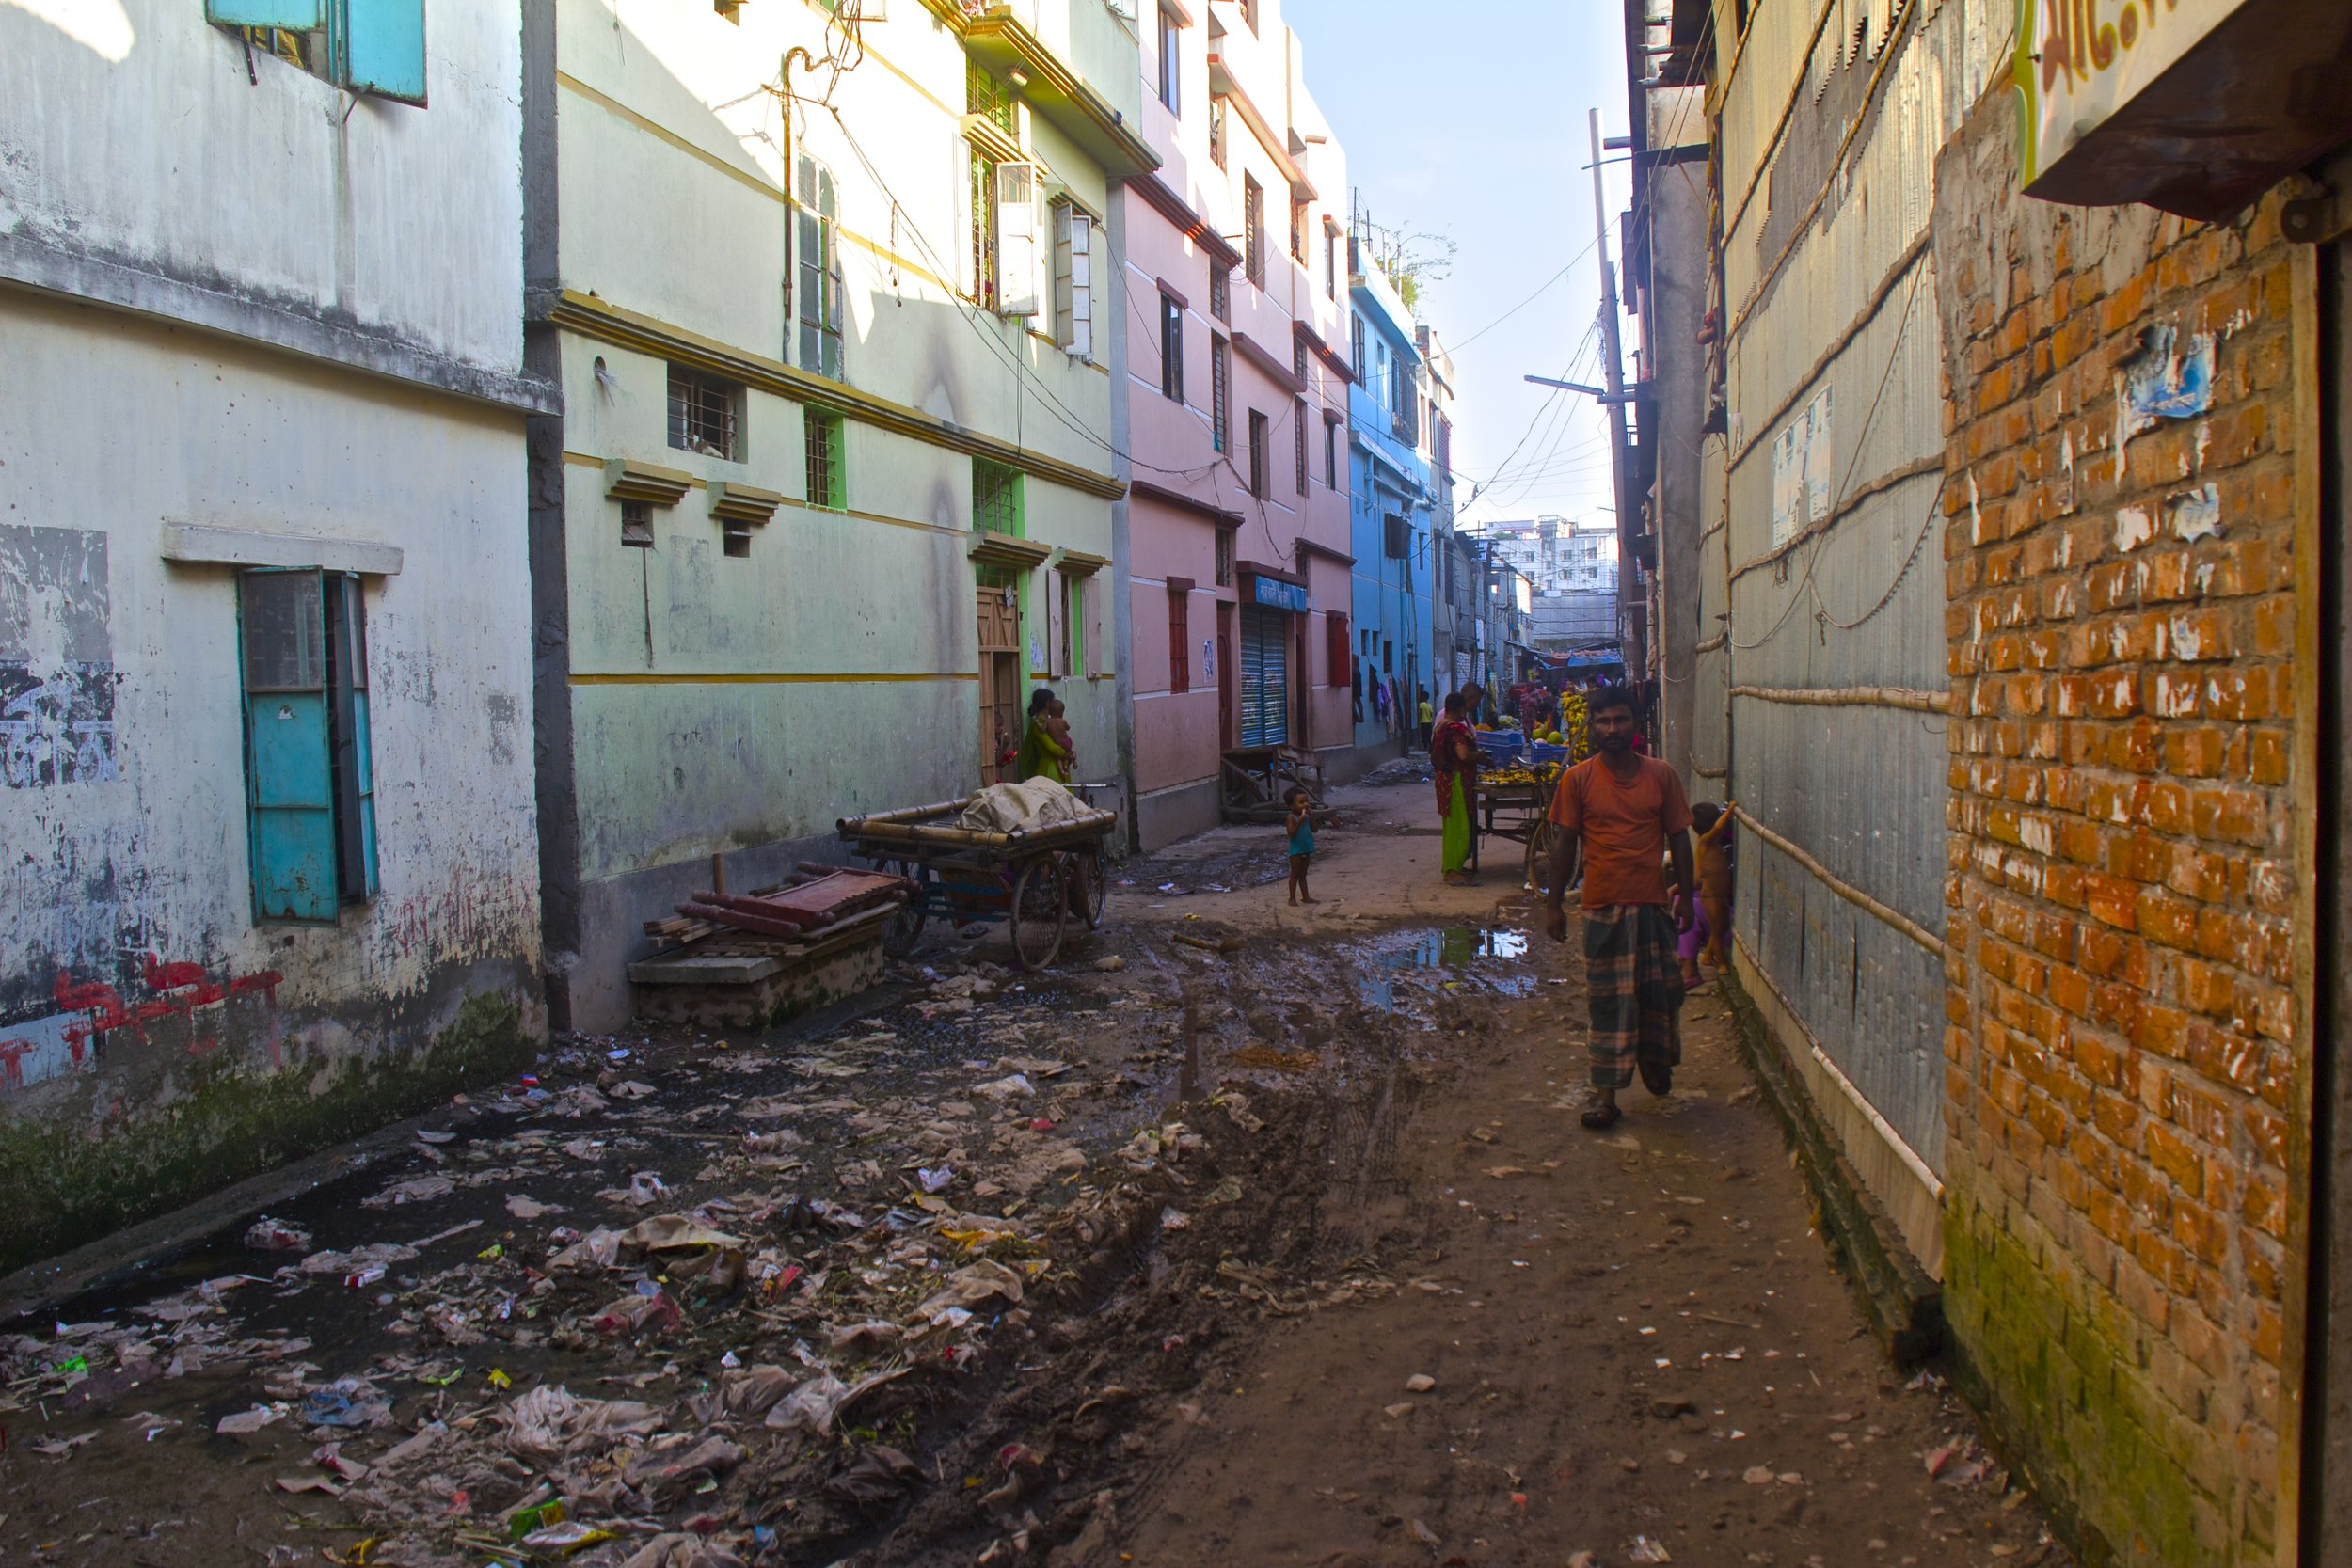 dhaka bangladesh slums photography 5.jpg